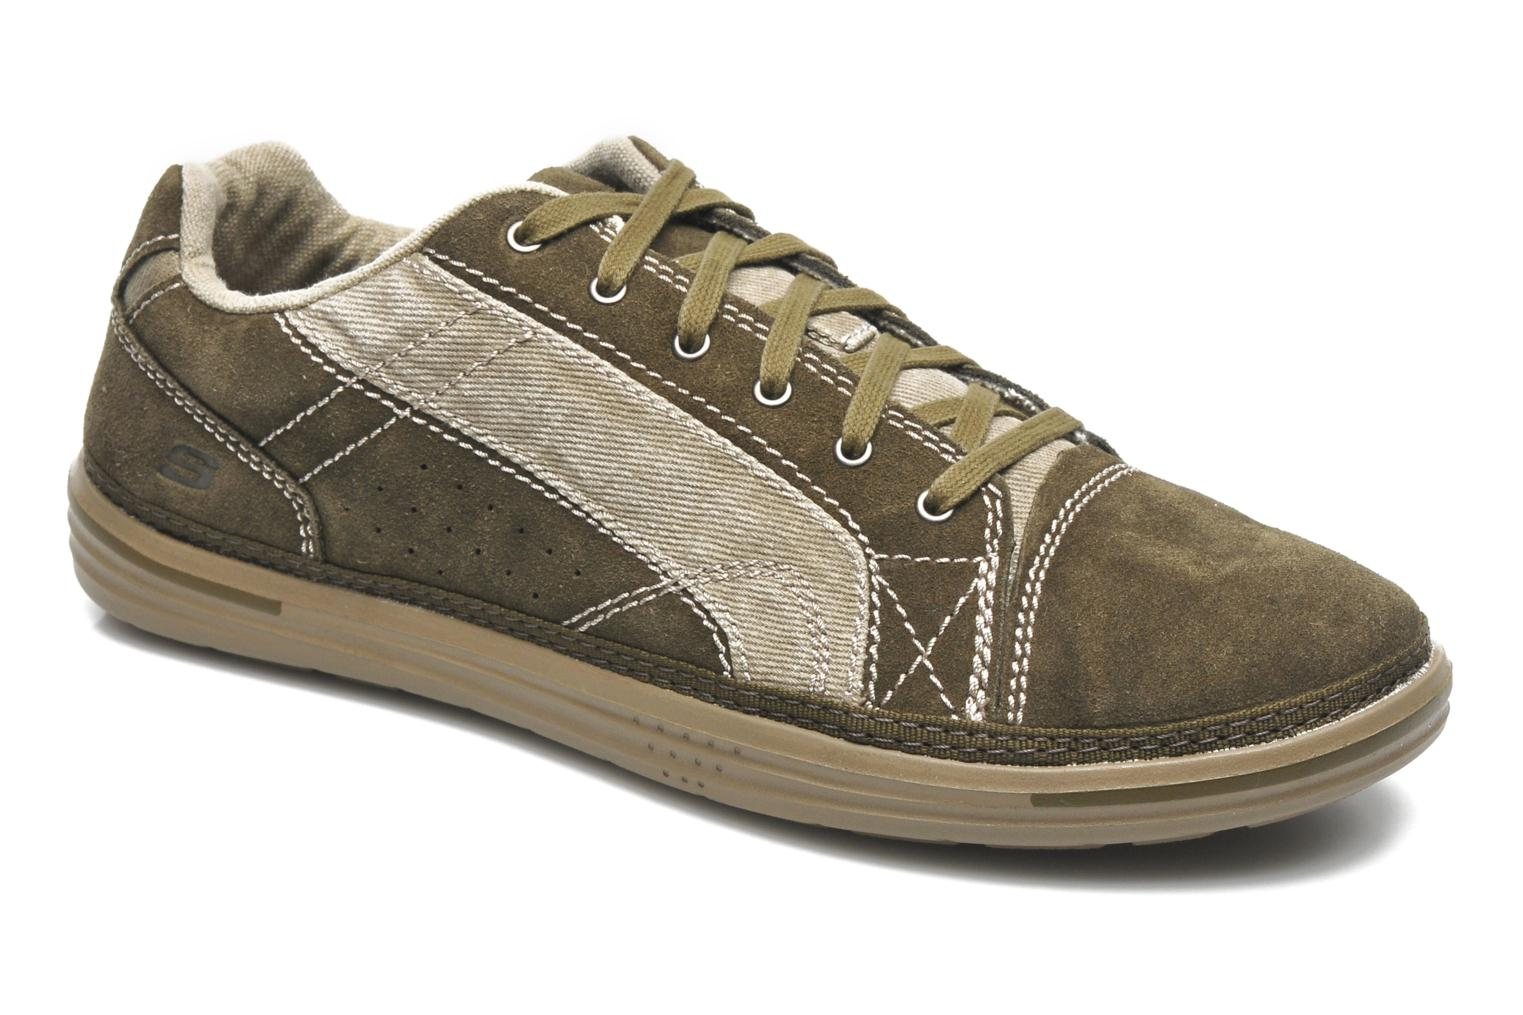 Landen Buford 64352 Taupe